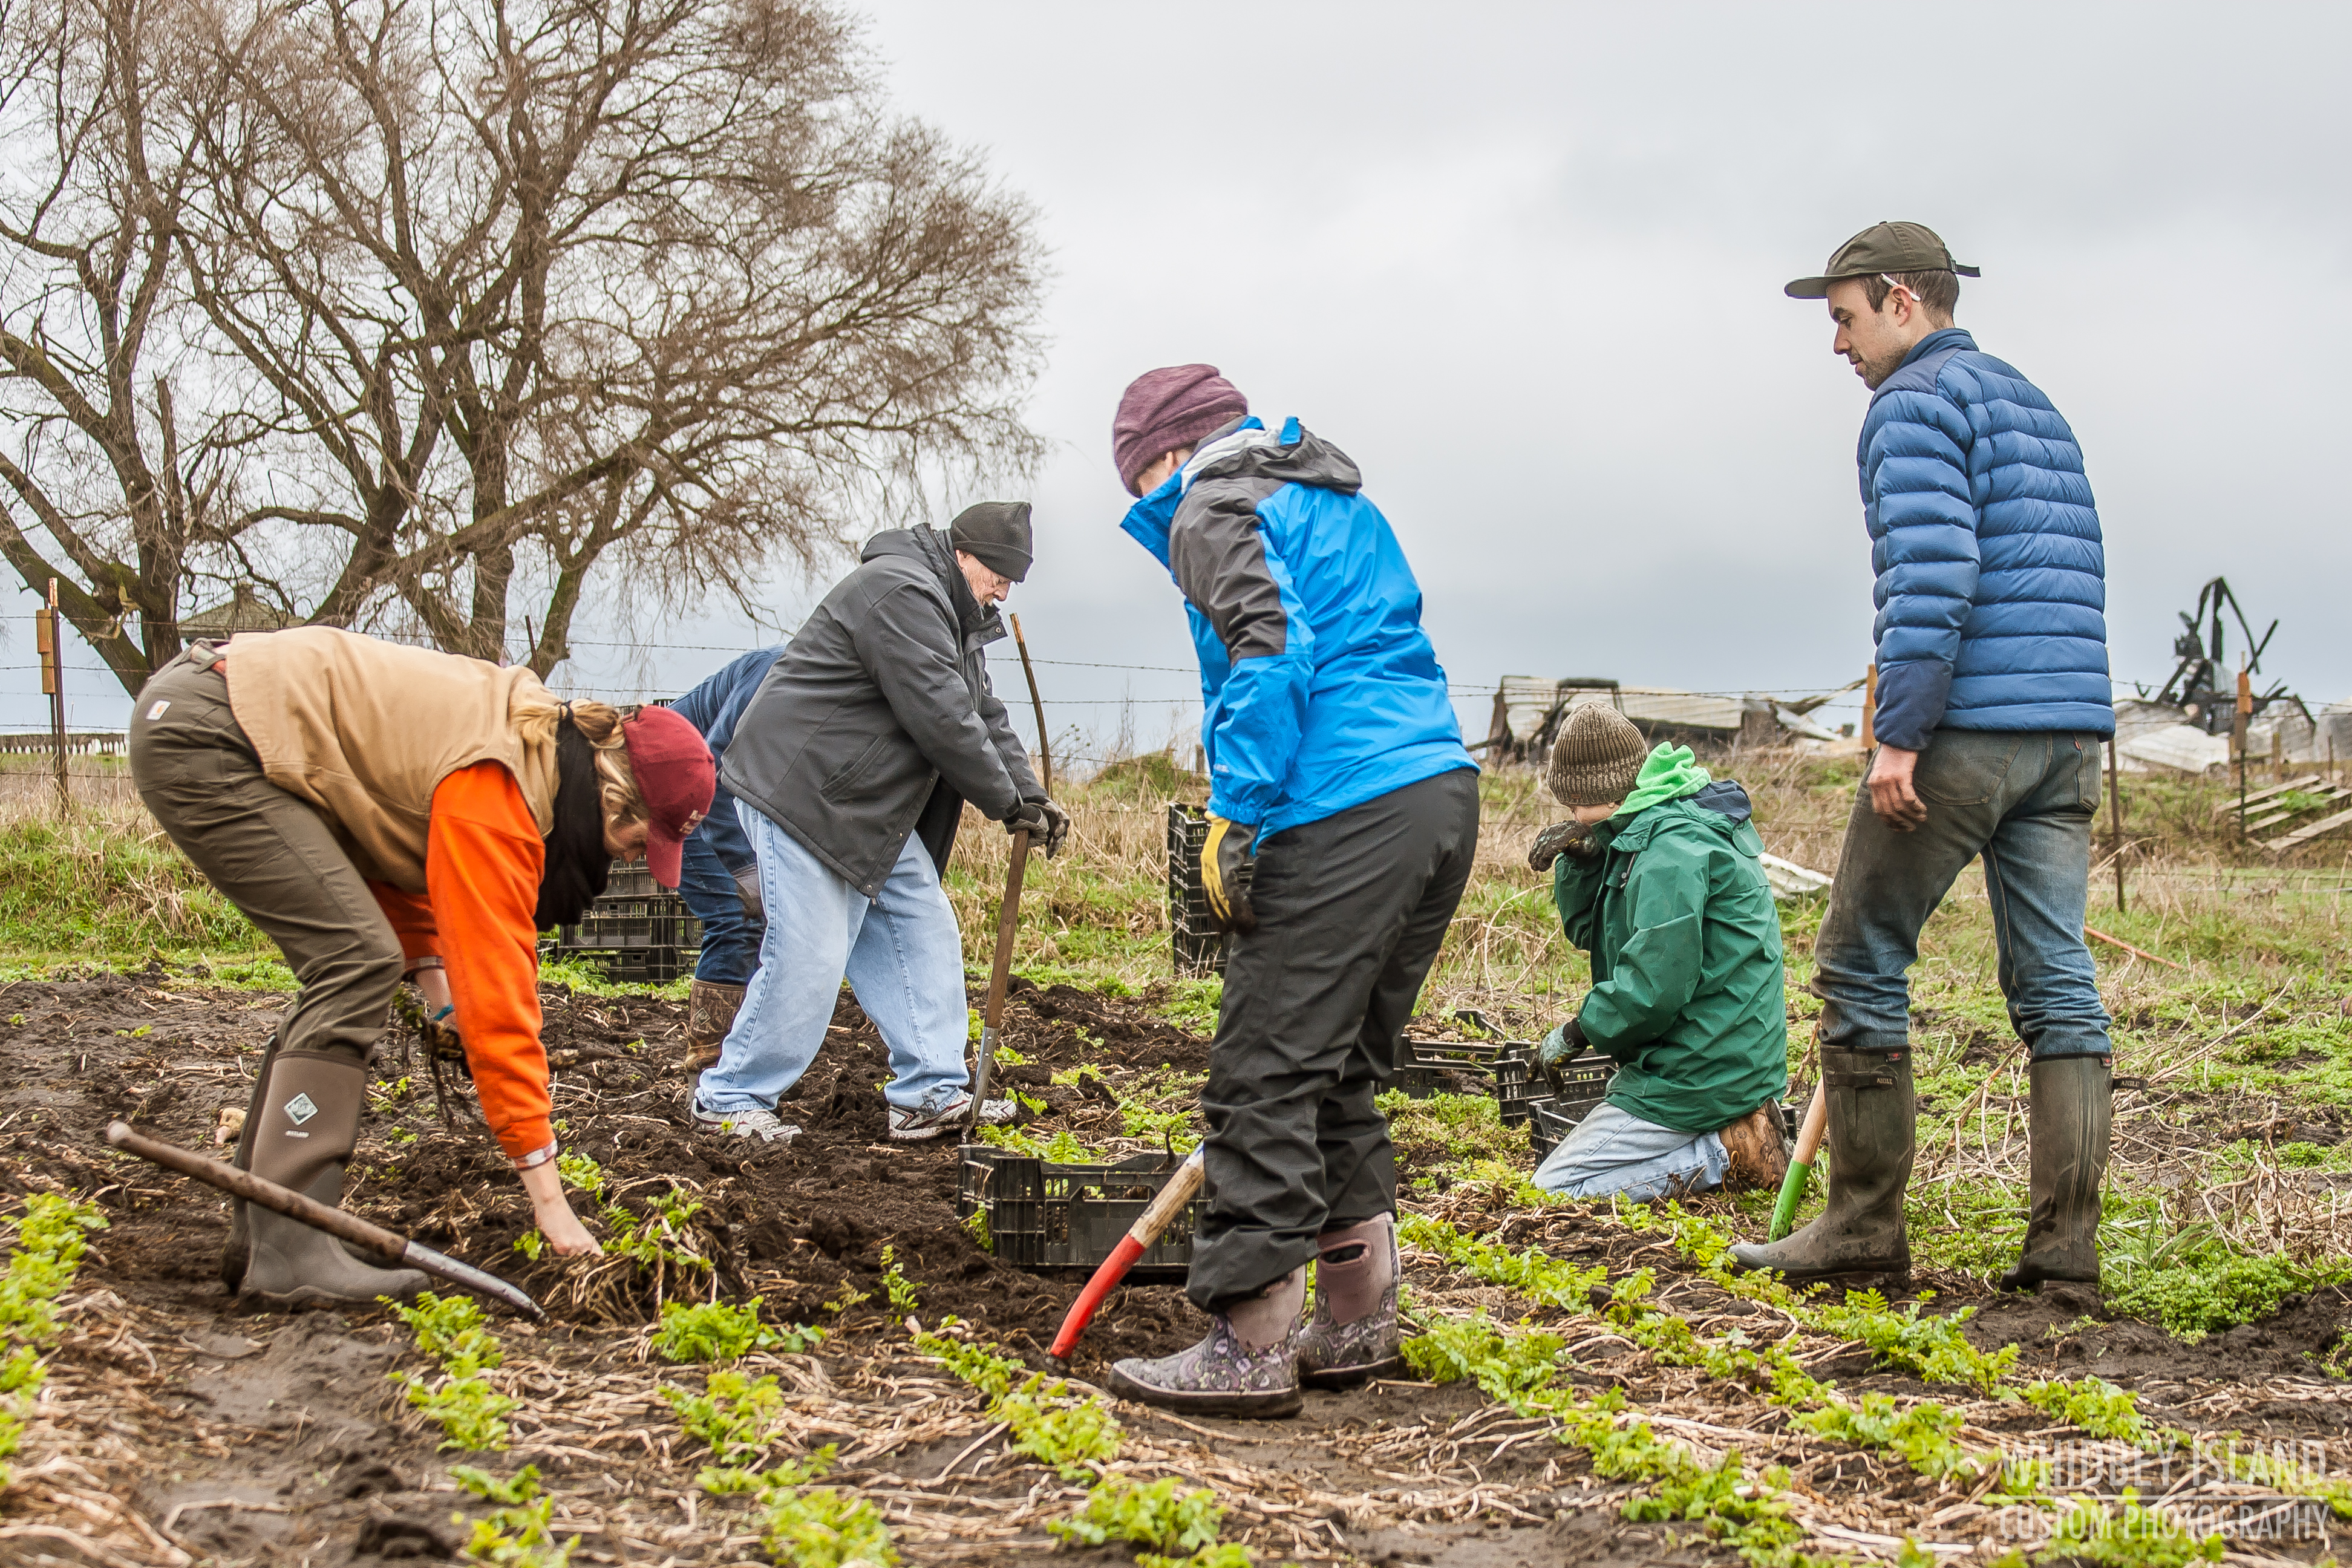 Volunteers harvesting parsnips at Willowood Farm of Ebey's Prairie three days after the Smith Barn fire.